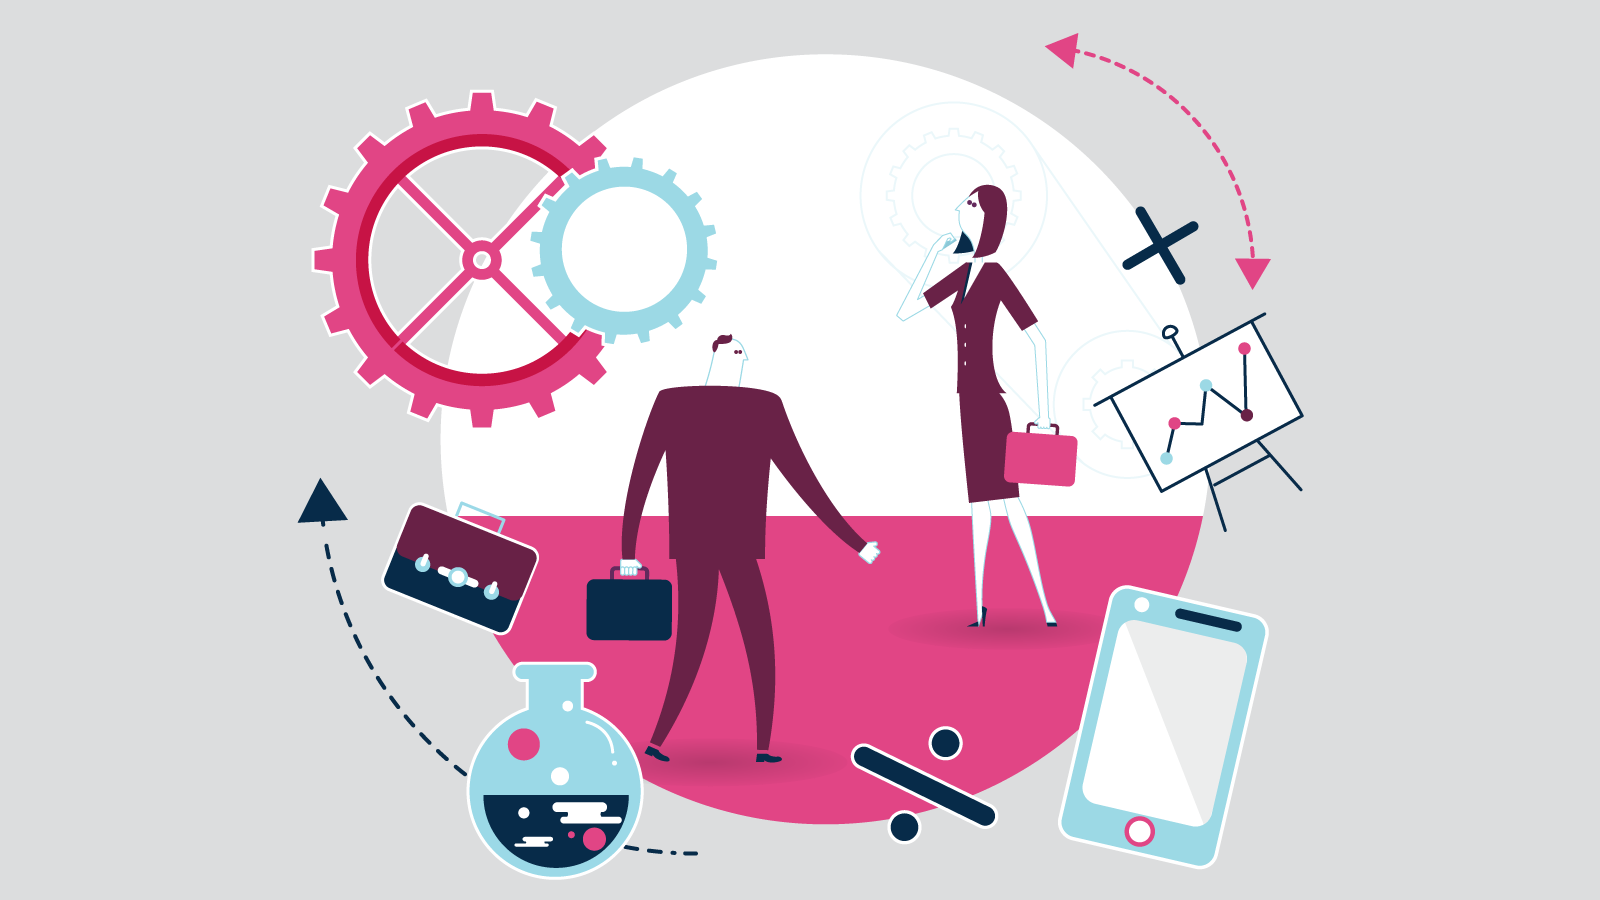 Illustration of two people on carrying briefcases surrounded by technology items on a grey background.